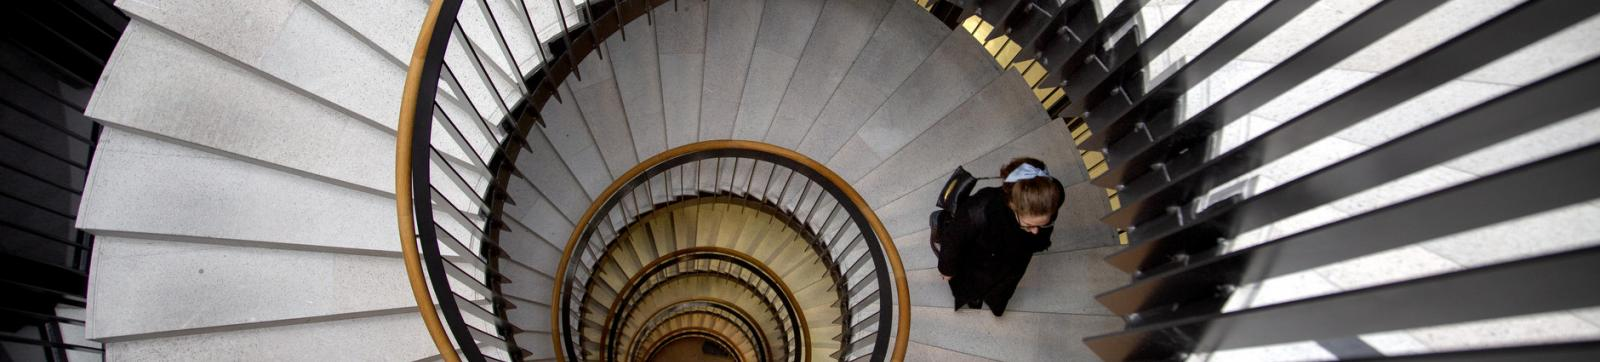 Innovation - woman walking in a spiral staircase